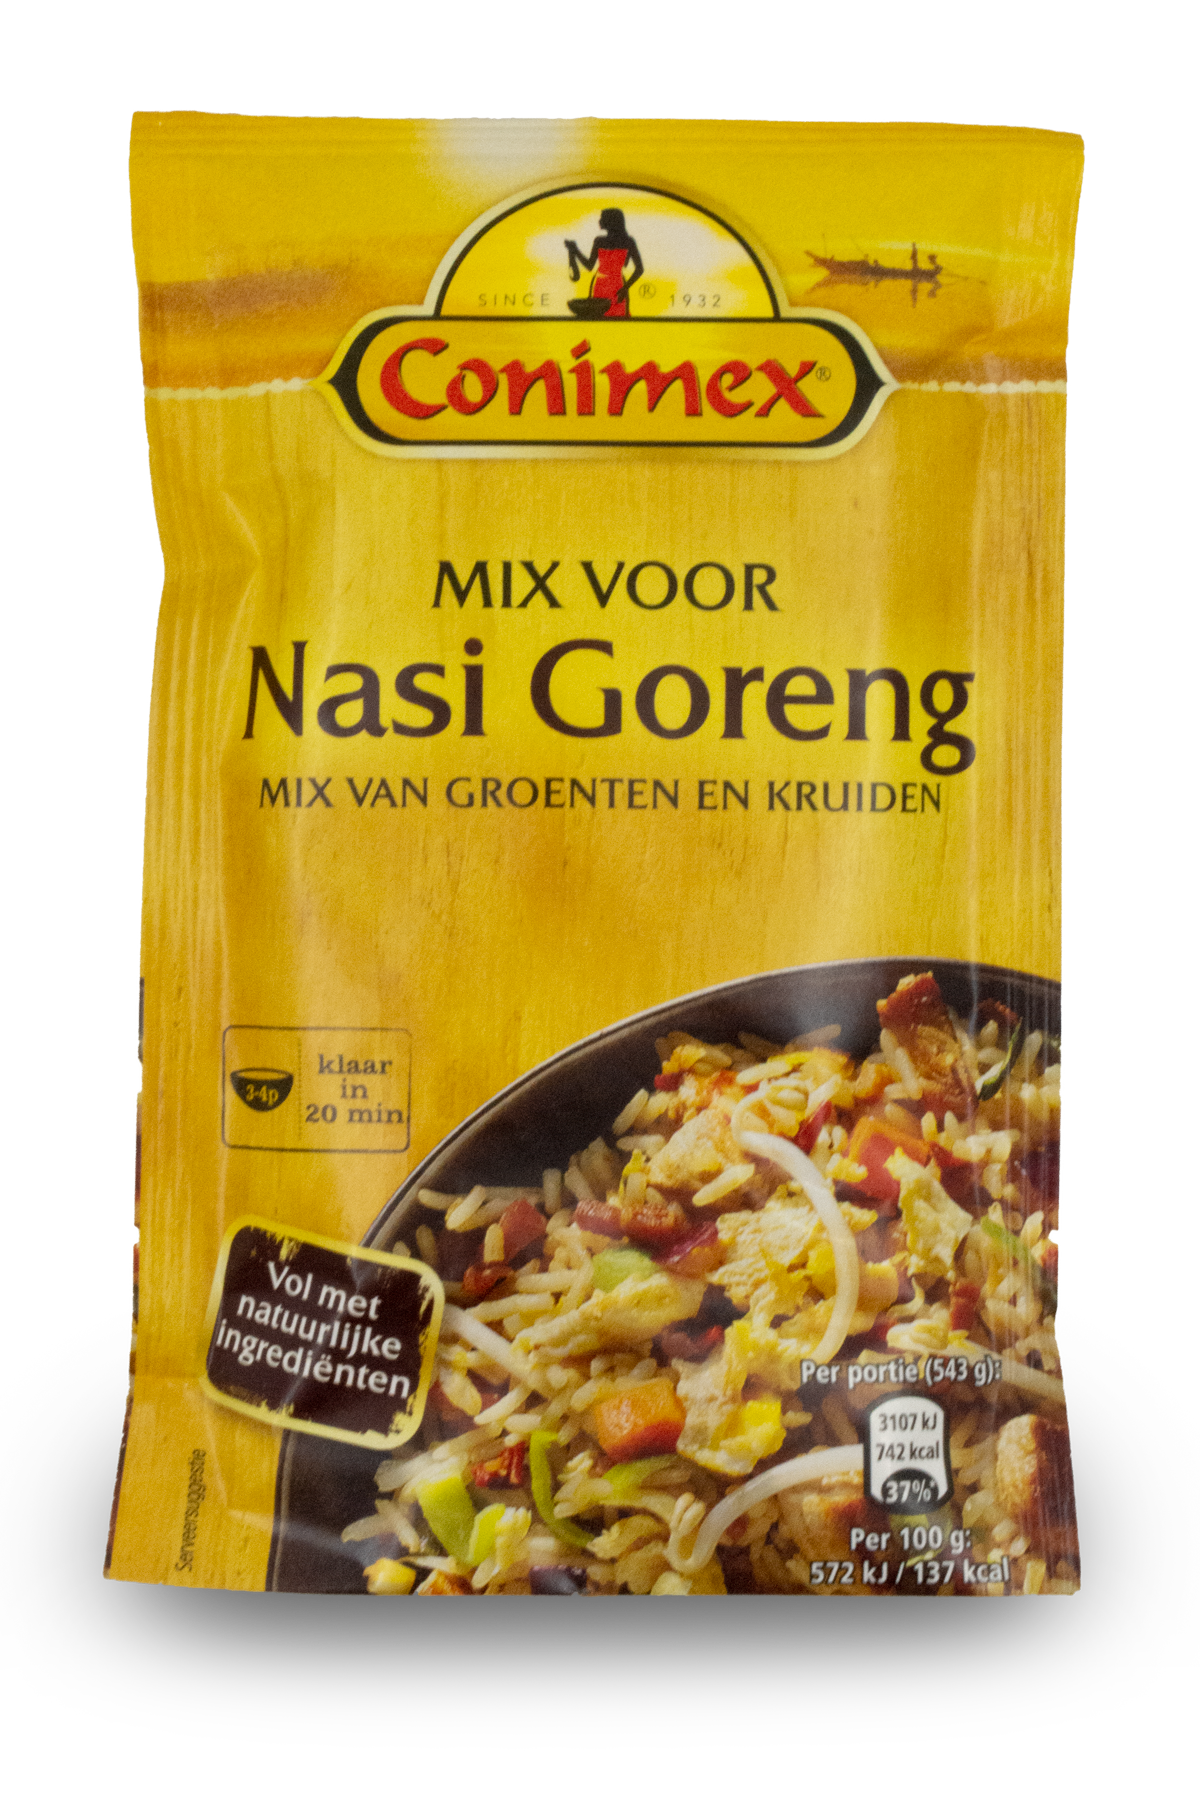 Conimex Nasi Goreng Mix 39g - The Dutch Shop | European Deli, Grocery, Lifestyle & More